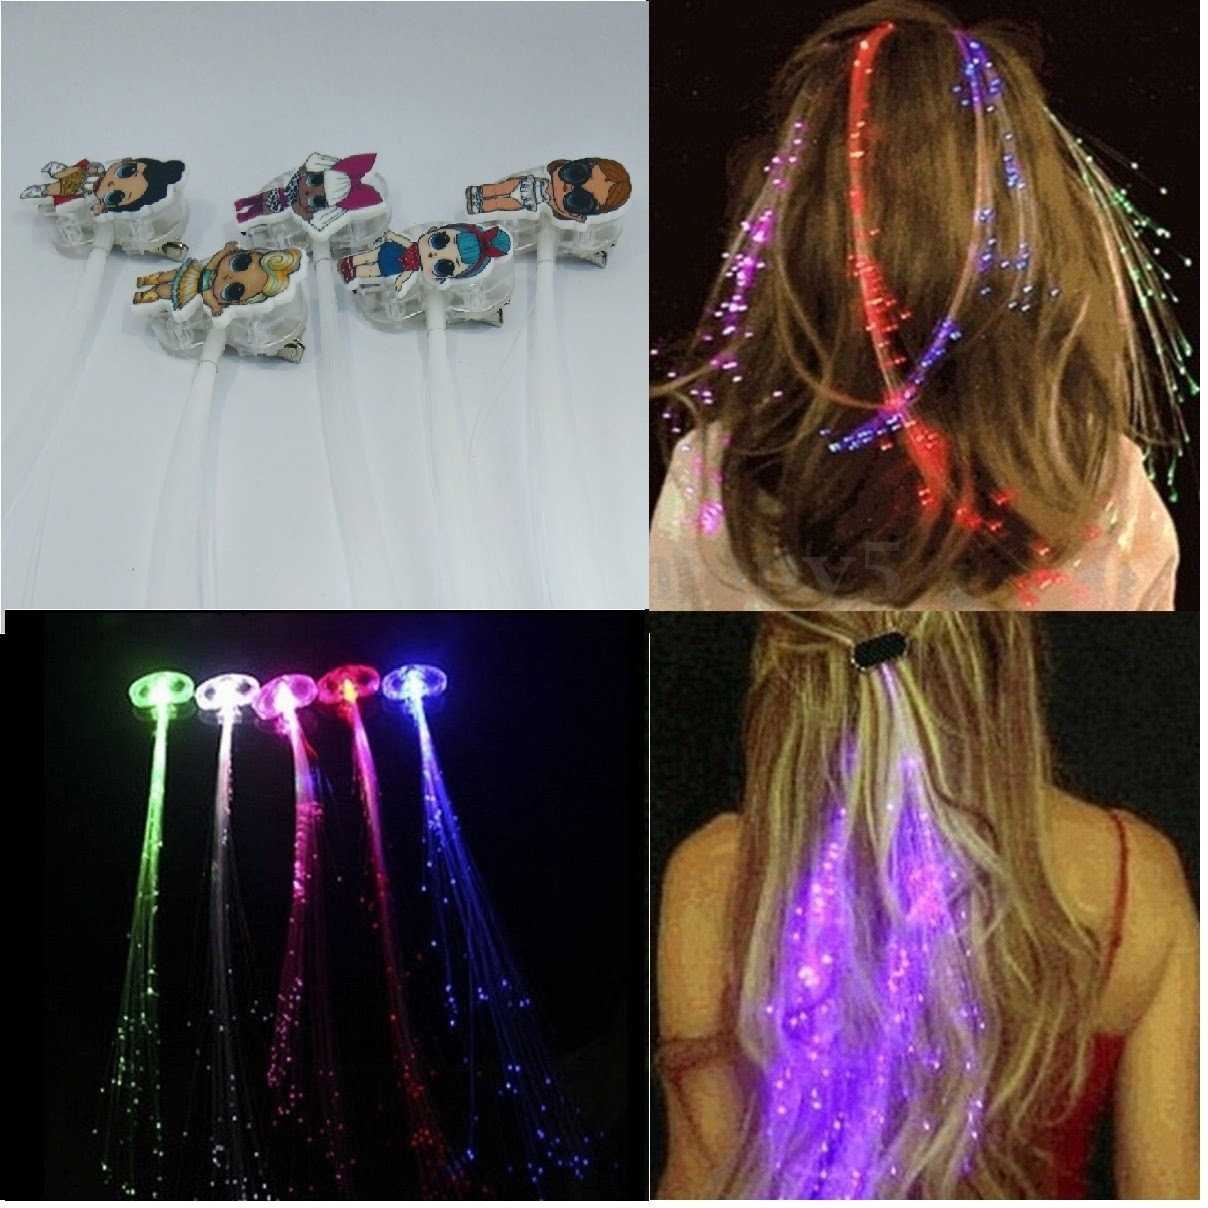 10 clip hair extension LoL Surprise luce a led  gioco luminoso capelli gadgets fine festa compleanno bambine